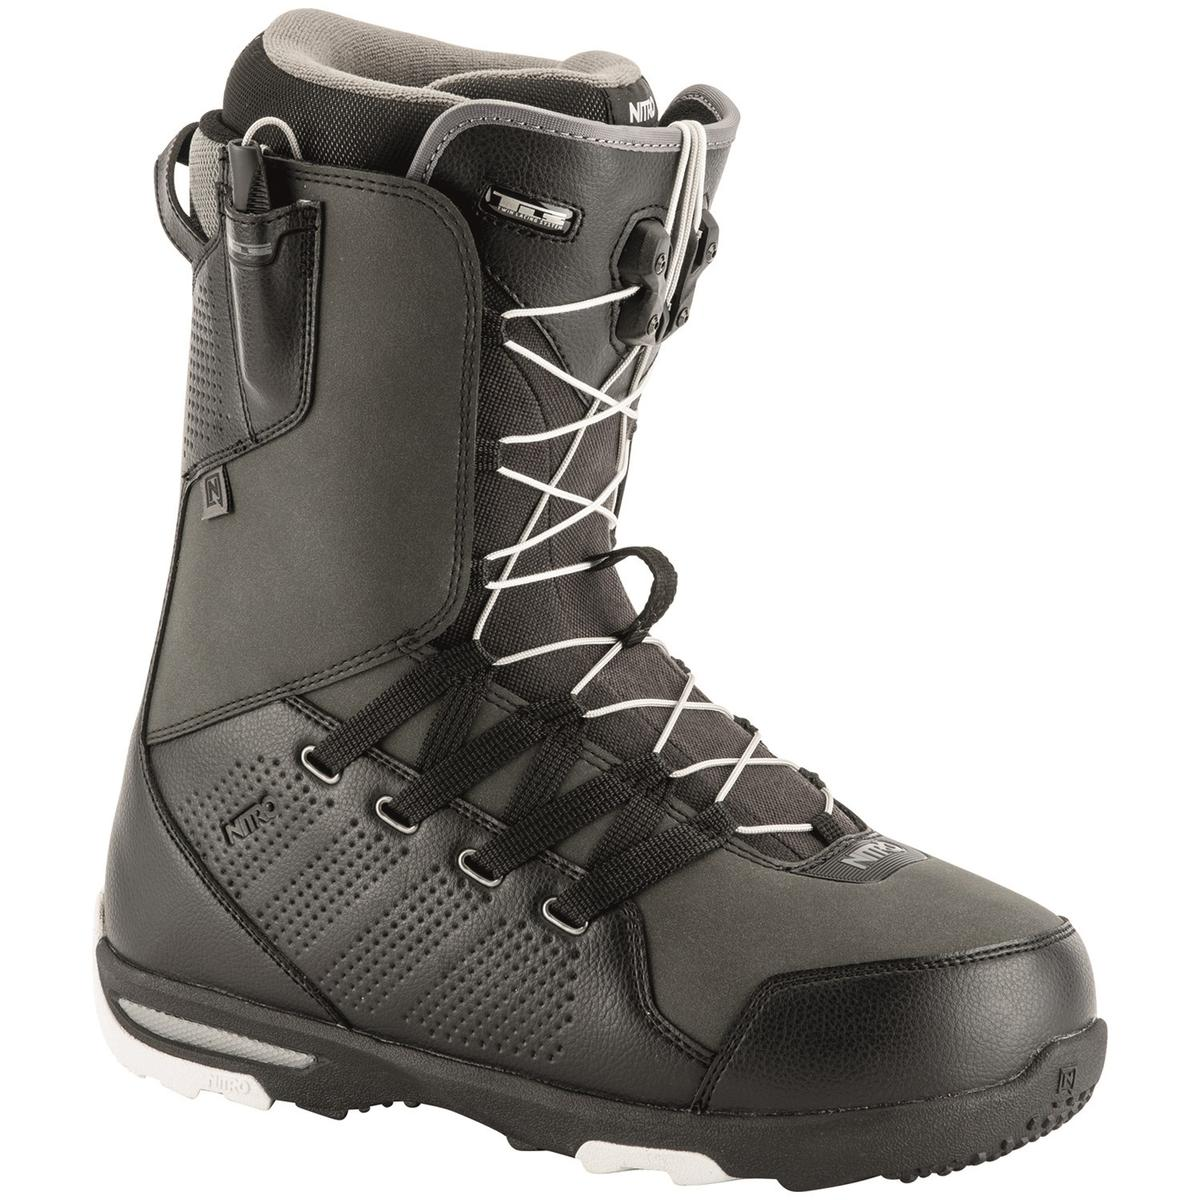 Nitro Thunder TLS Men's Snowboard Boot